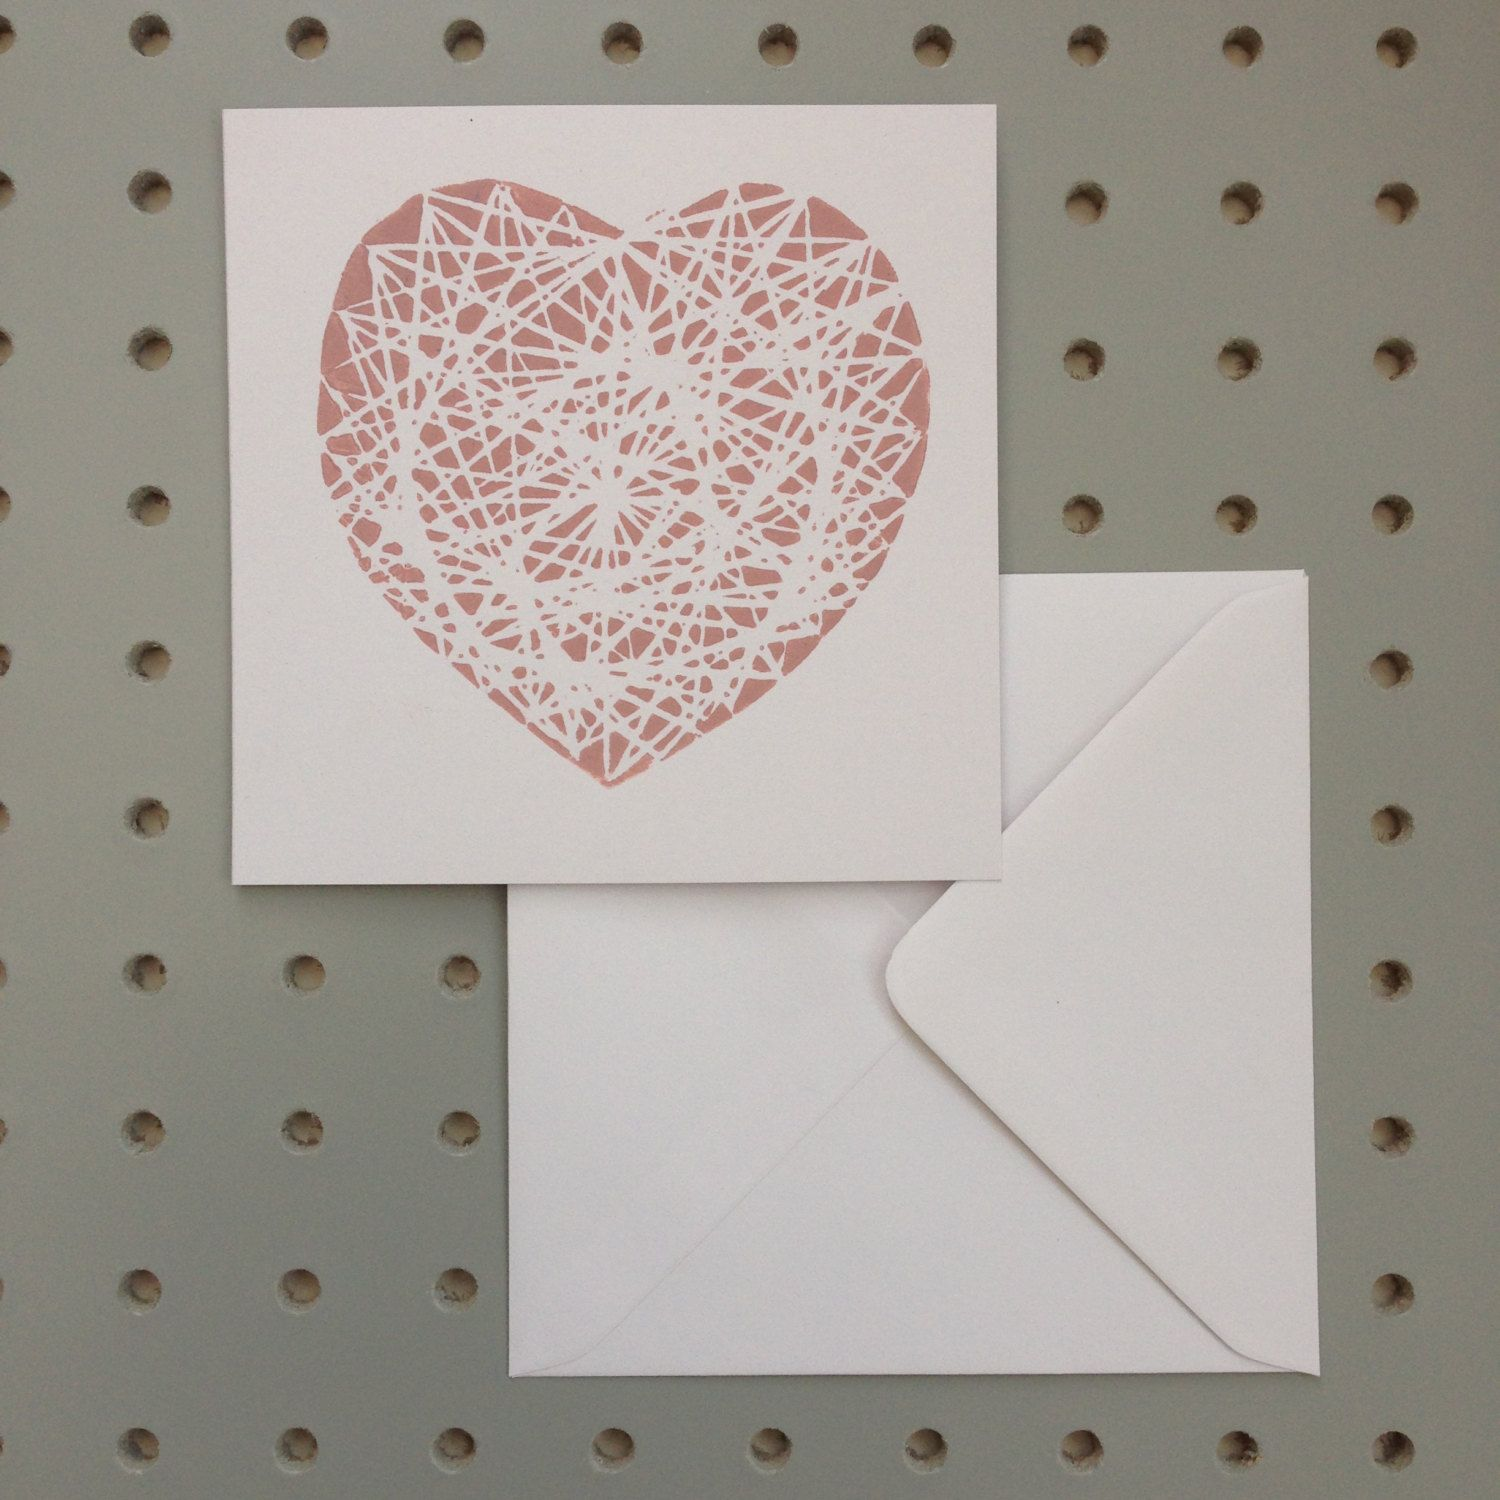 Complicated Heart. Linear Style. Hand Printed Linocut Greetings Card. by HollyBowerMakes on Etsy